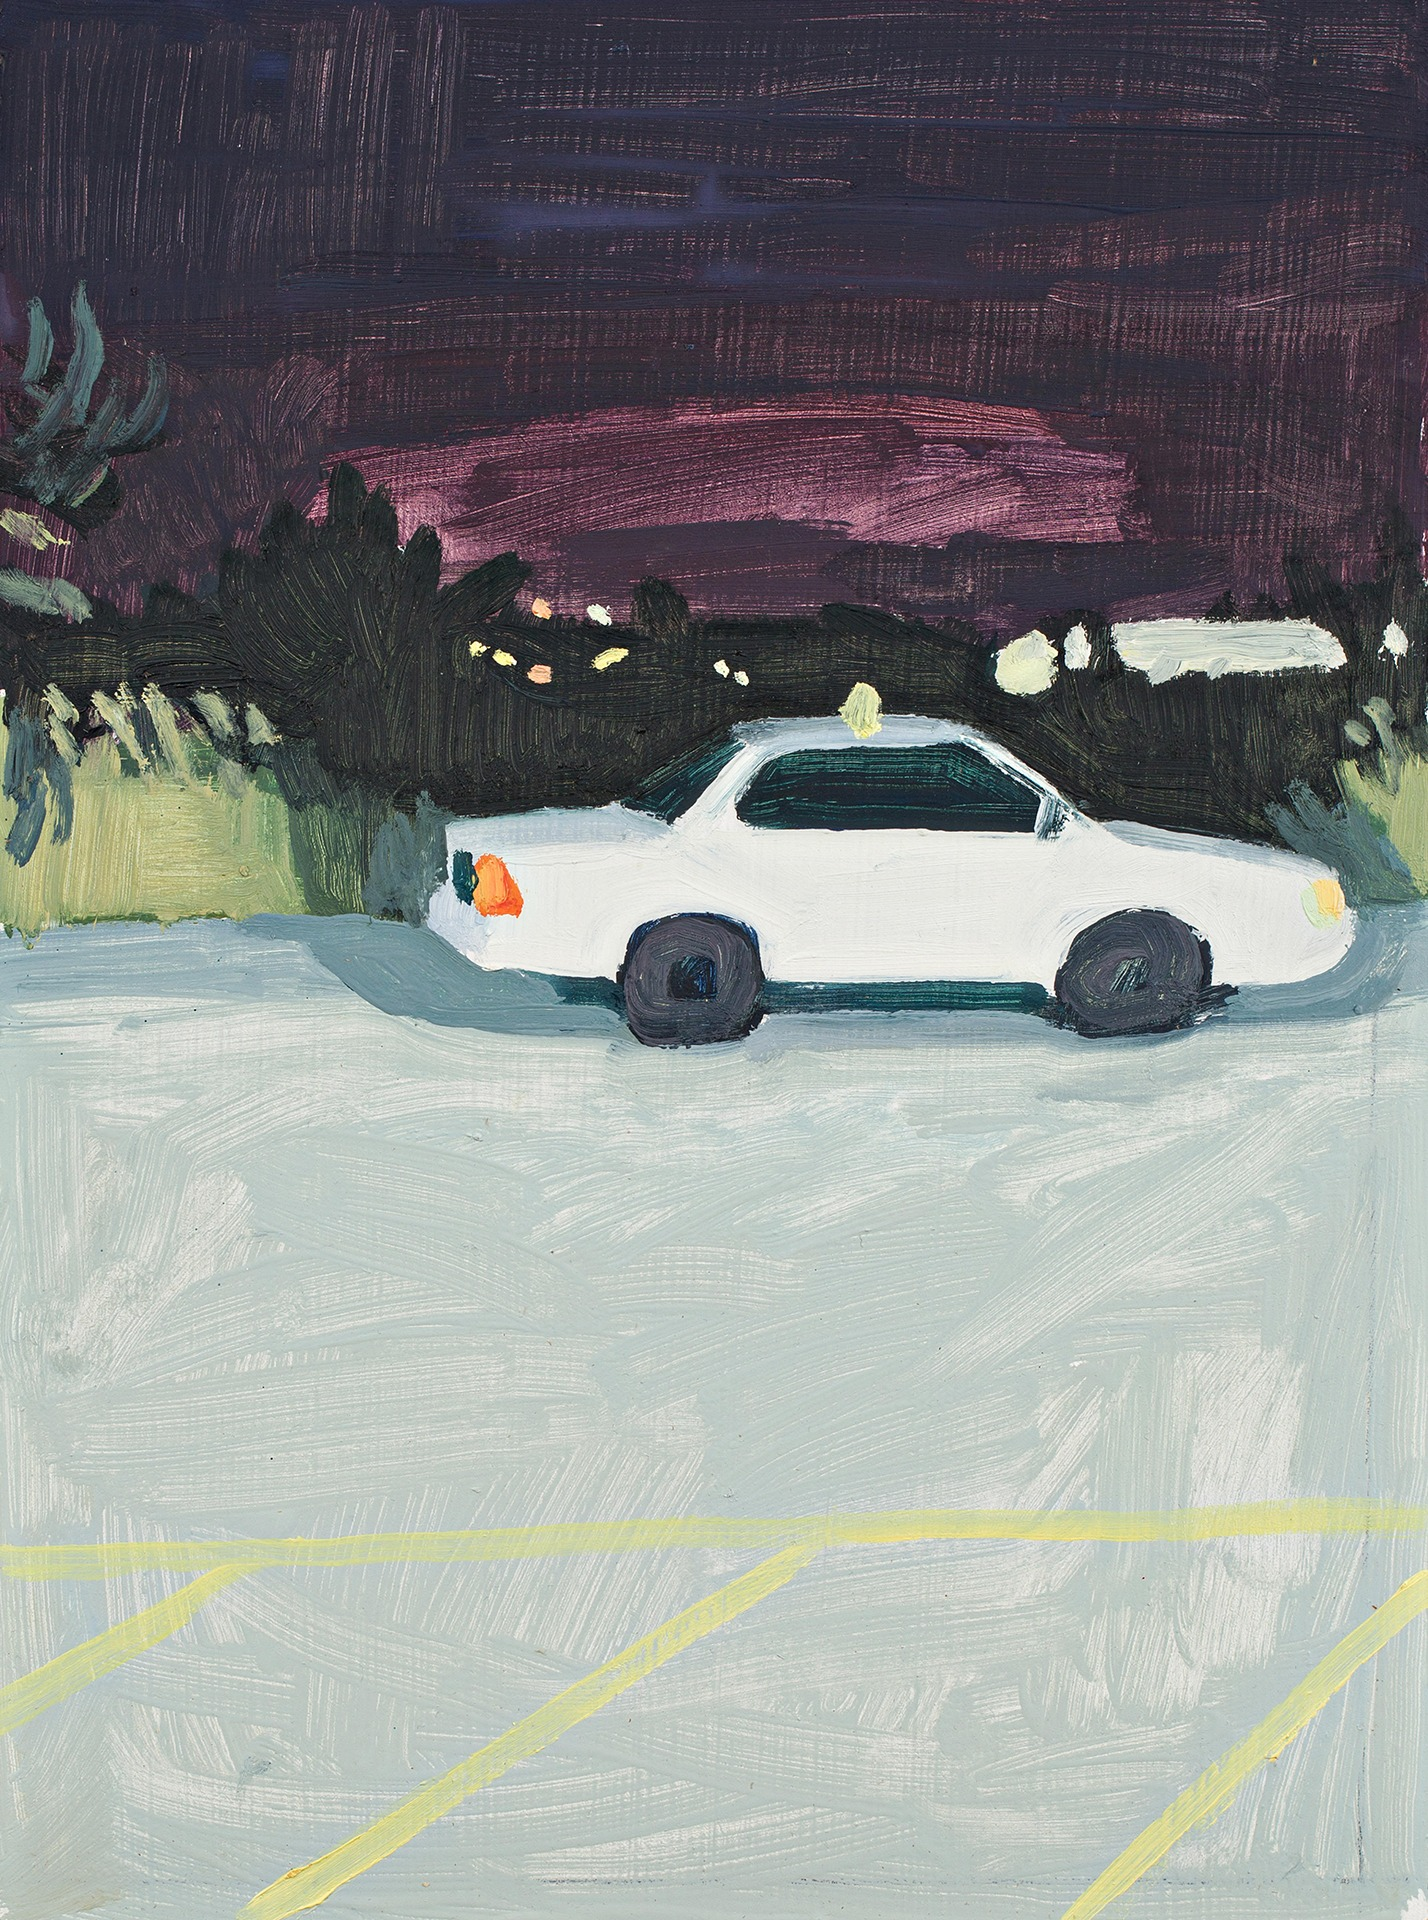 A painting by Claudia Keep titled Bangor, 10:32 PM, dated 2019.